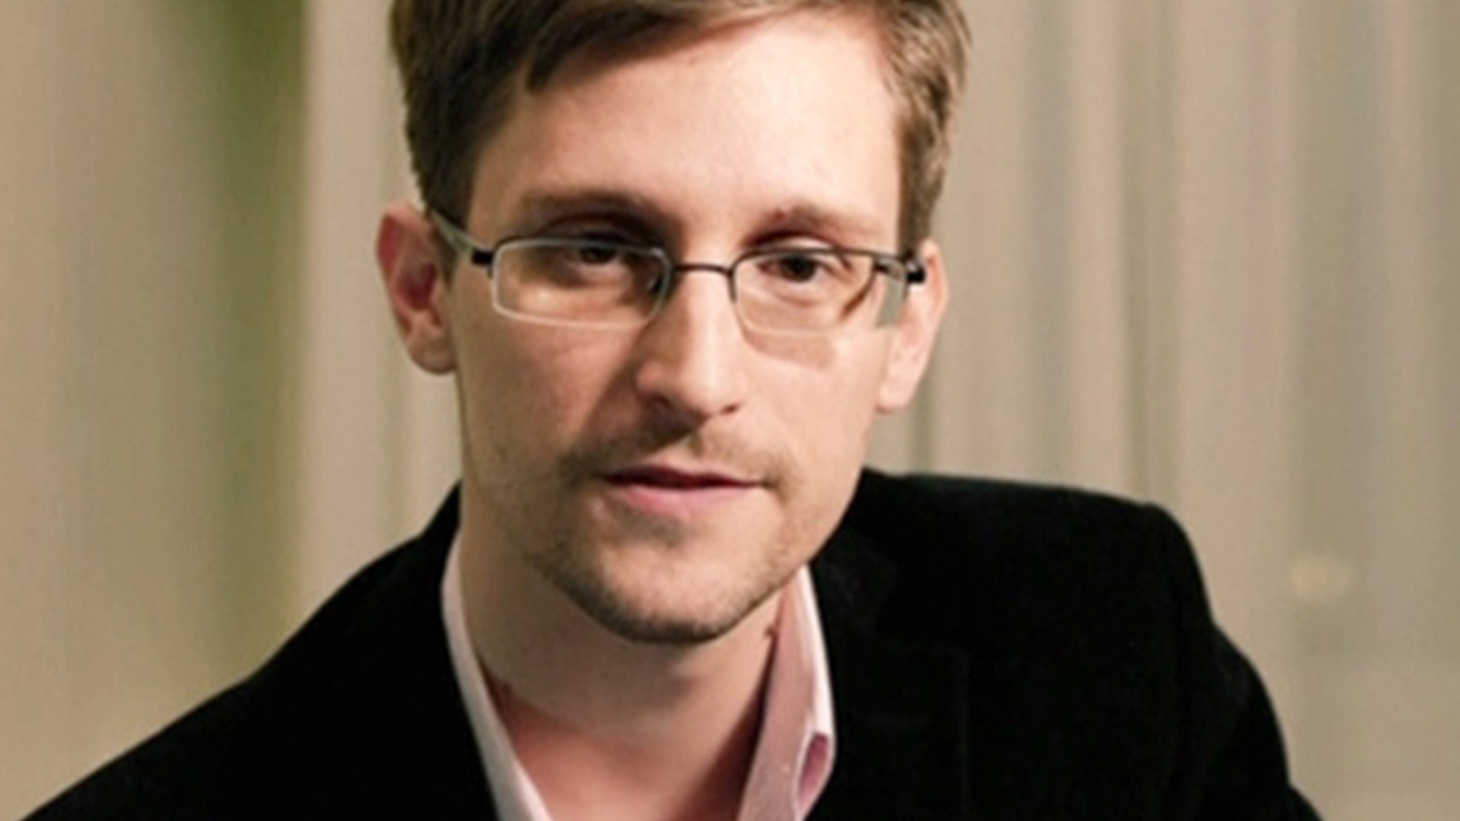 A new documentary follows NSA leaker Edward Snowden through his decisions to release top-secret documents and go public. Also, a 20-year cheating scandal designed to boost student athletes' grades has been exposed at the University of North Carolina.